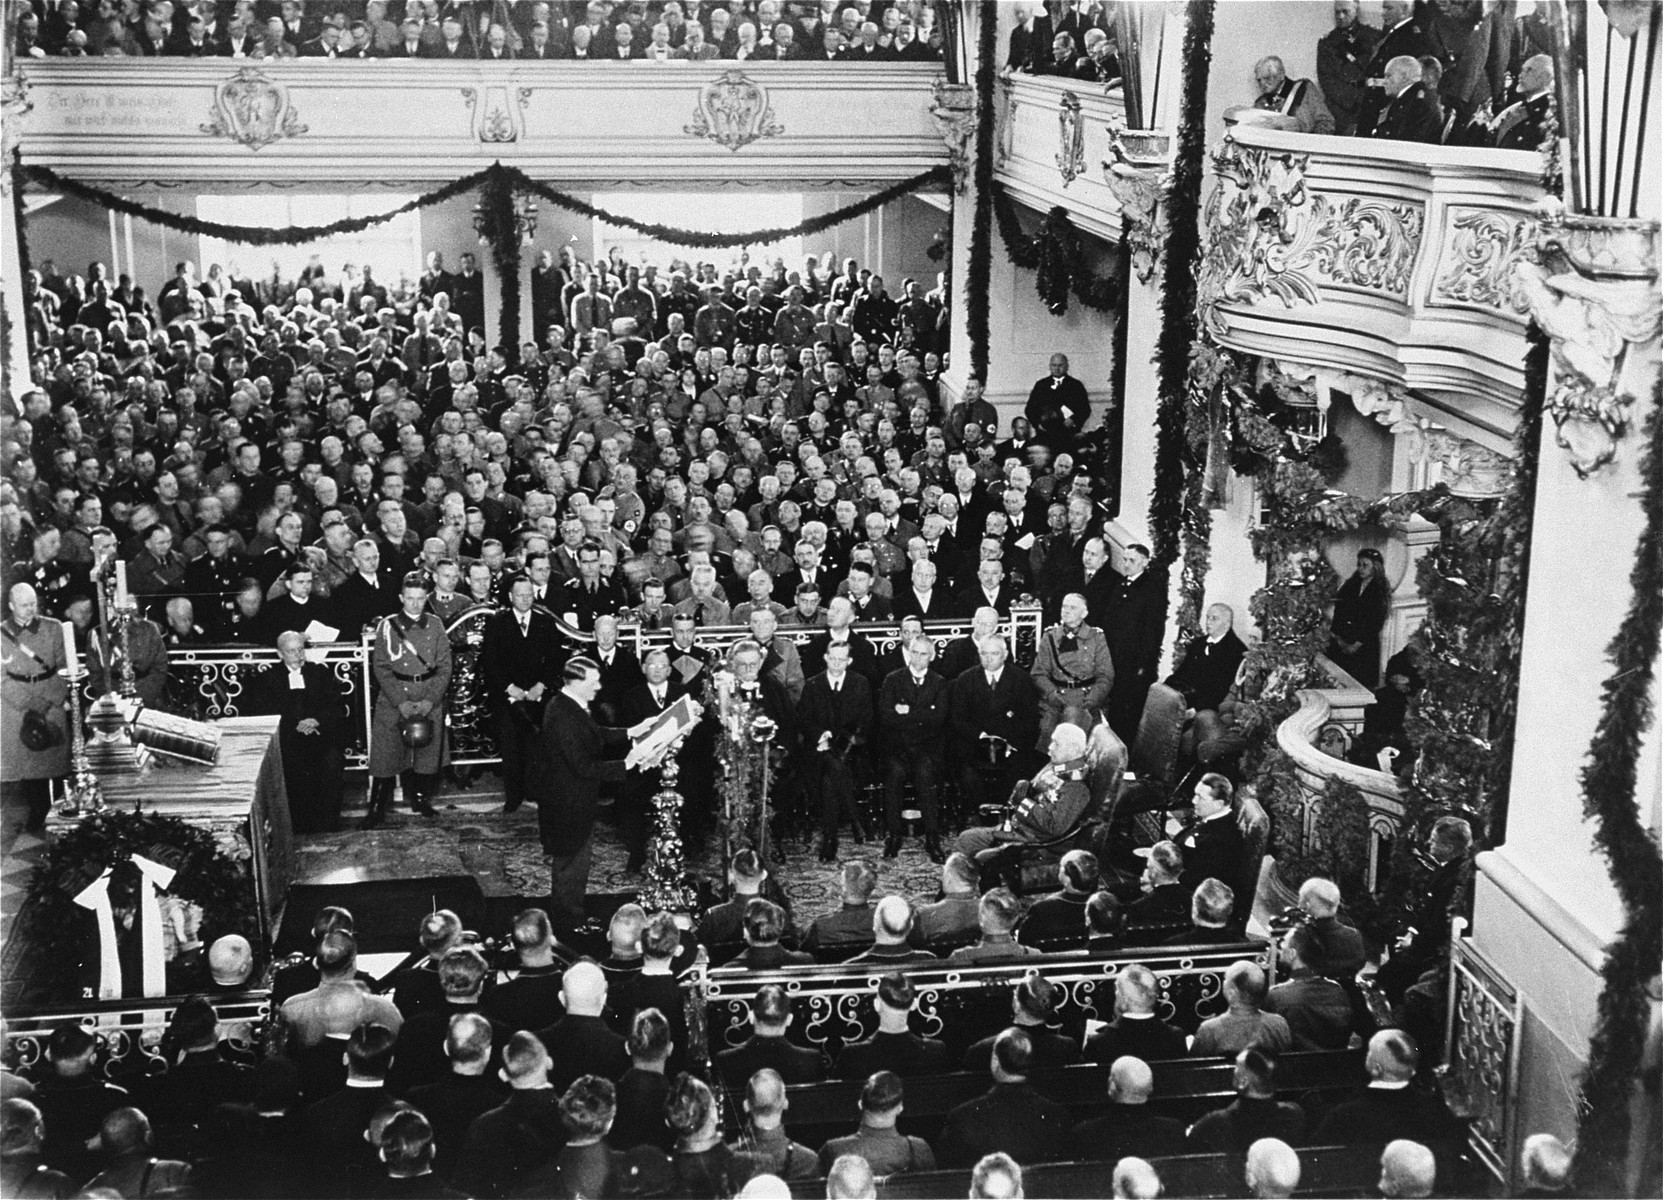 Hitler delivers his first address at the opening of the new Reichstag in Potsdam.